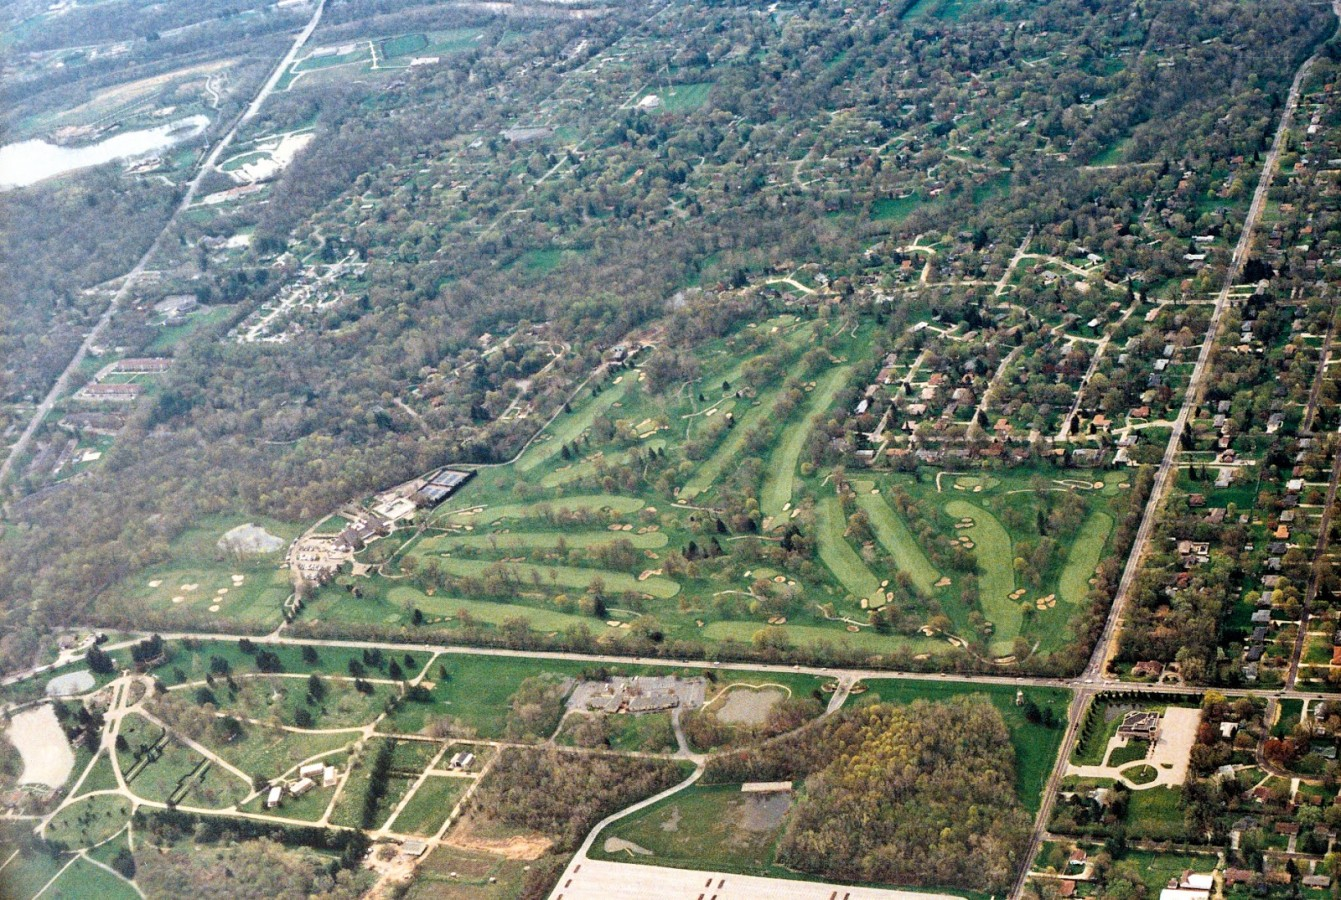 Crooked-Stick-Golf-Course-Indiana-from-the-sky-35mm-using-disposable-film-in-an-SLR-developed-images-www.wmiii.co-1